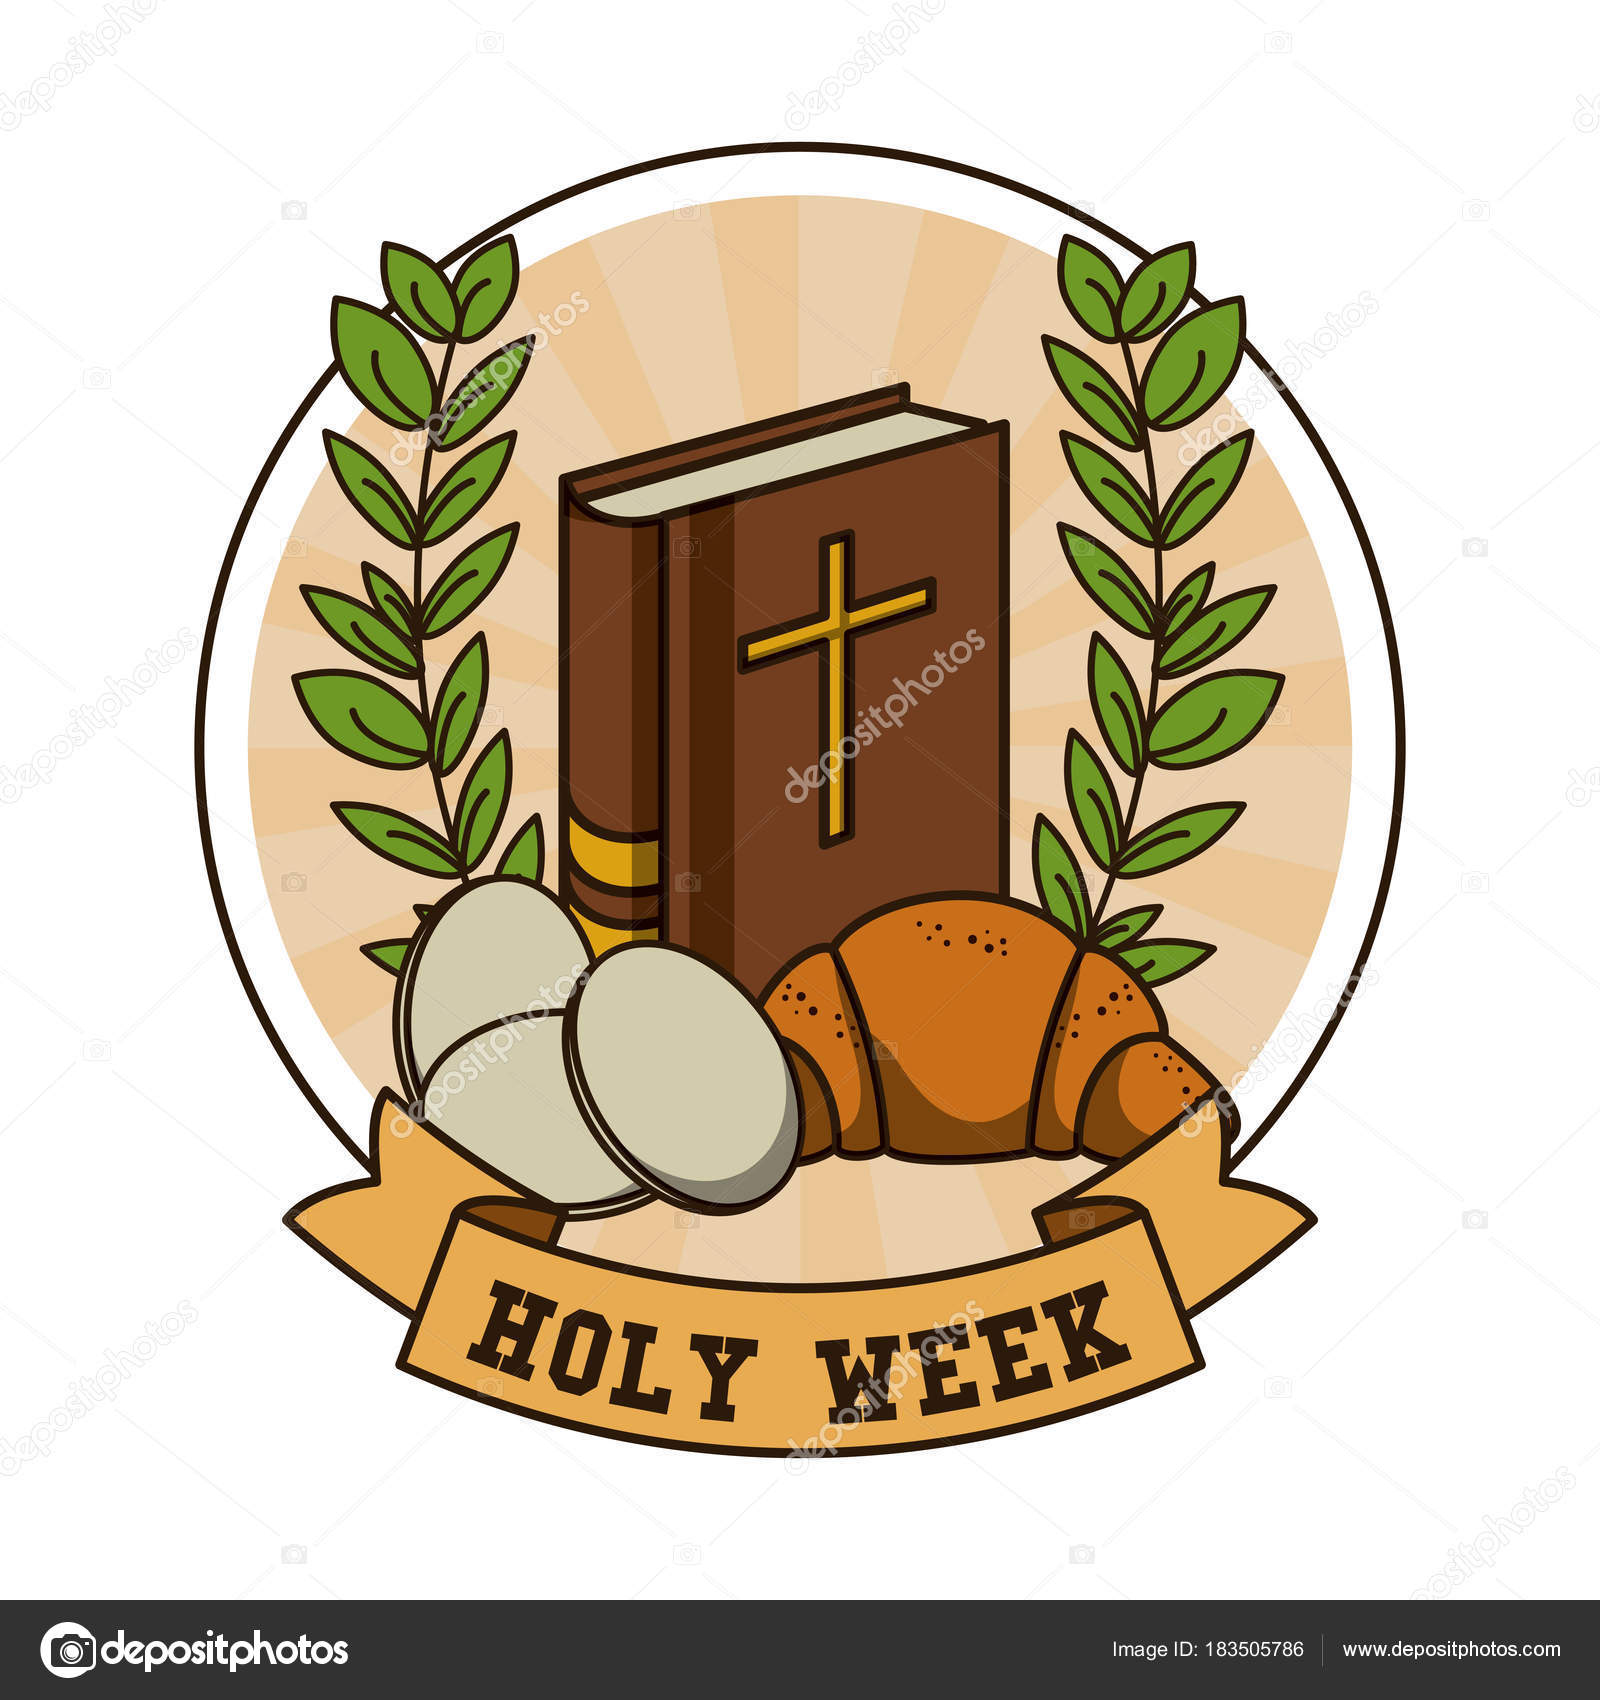 Holy week catholic tradition stock vector jemastock 183505786 holy week catholic tradition stock vector buycottarizona Images